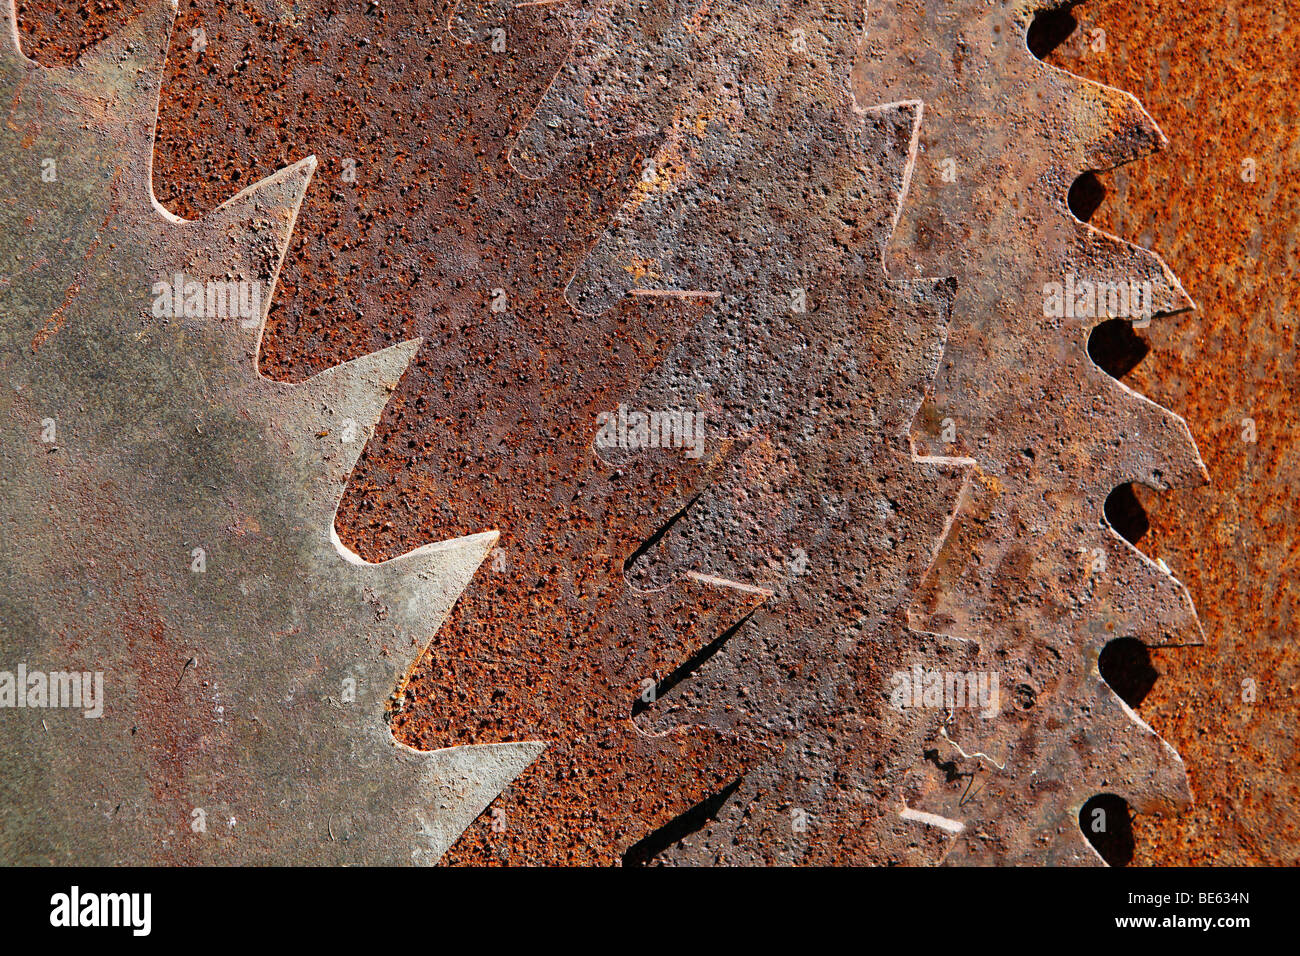 Rusted saw blades - Stock Image